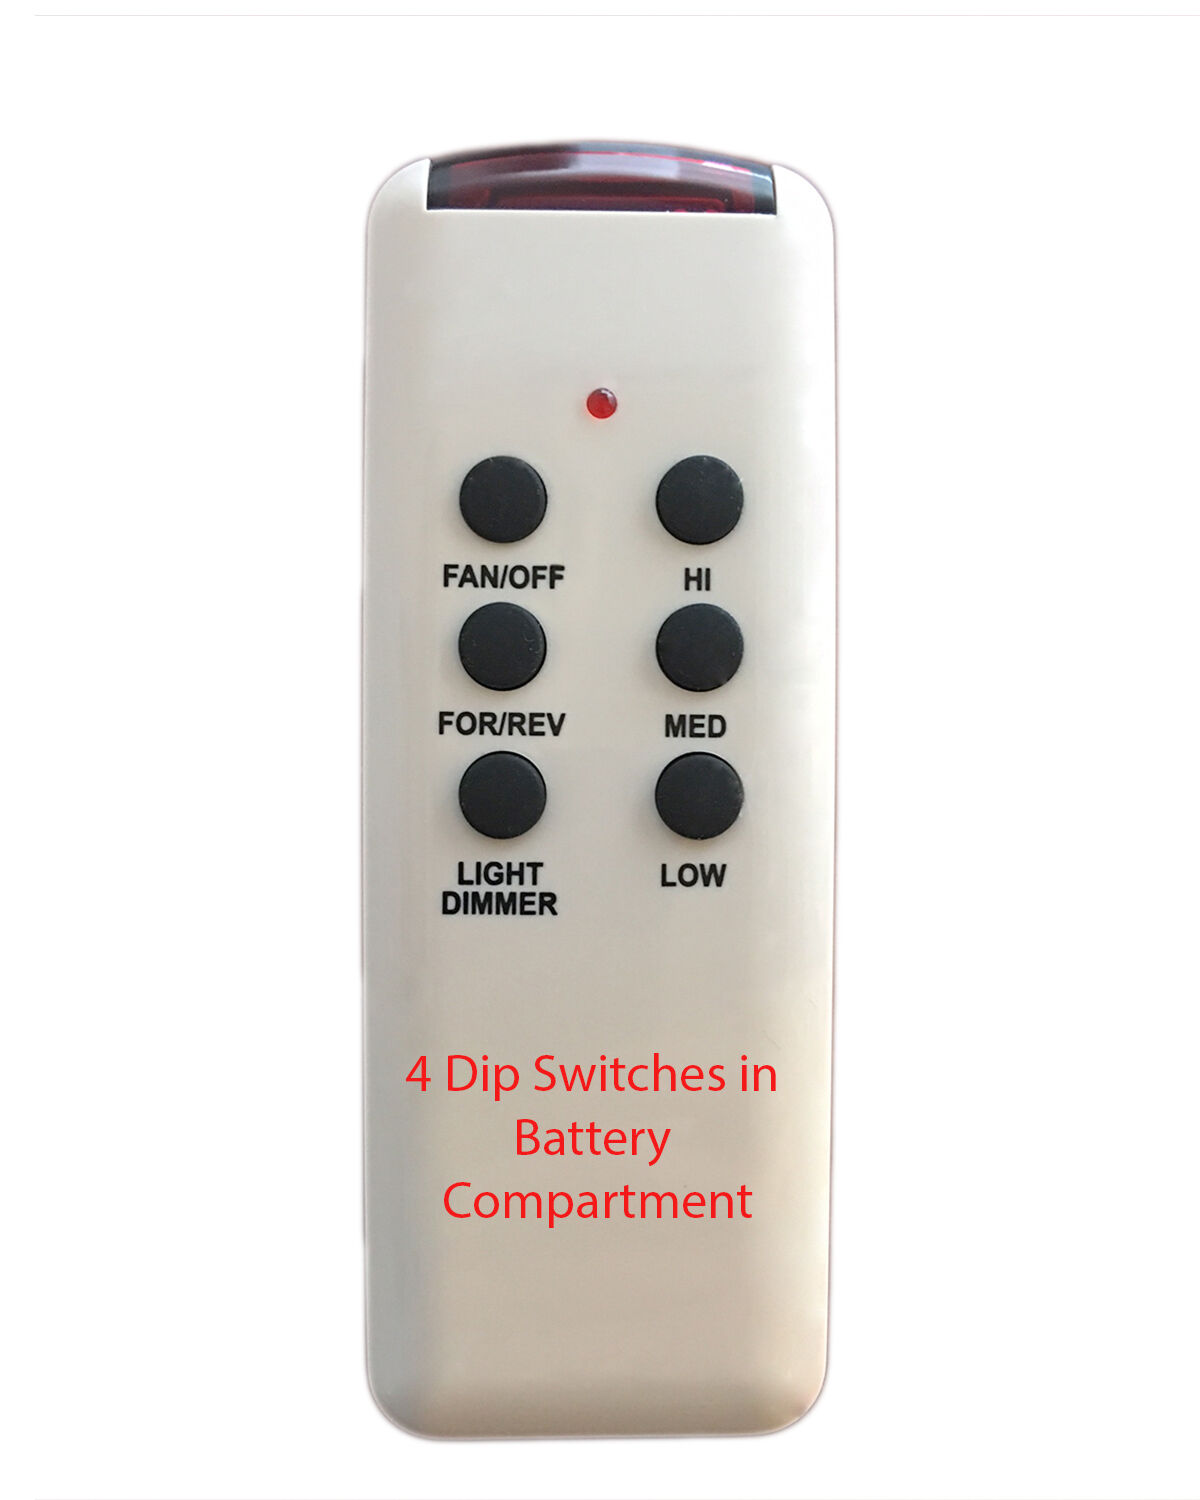 Casablanca emerson ceiling fan remote control replacement chq8bt7053t ceiling fan remote control 4 dip switch version aloadofball Image collections